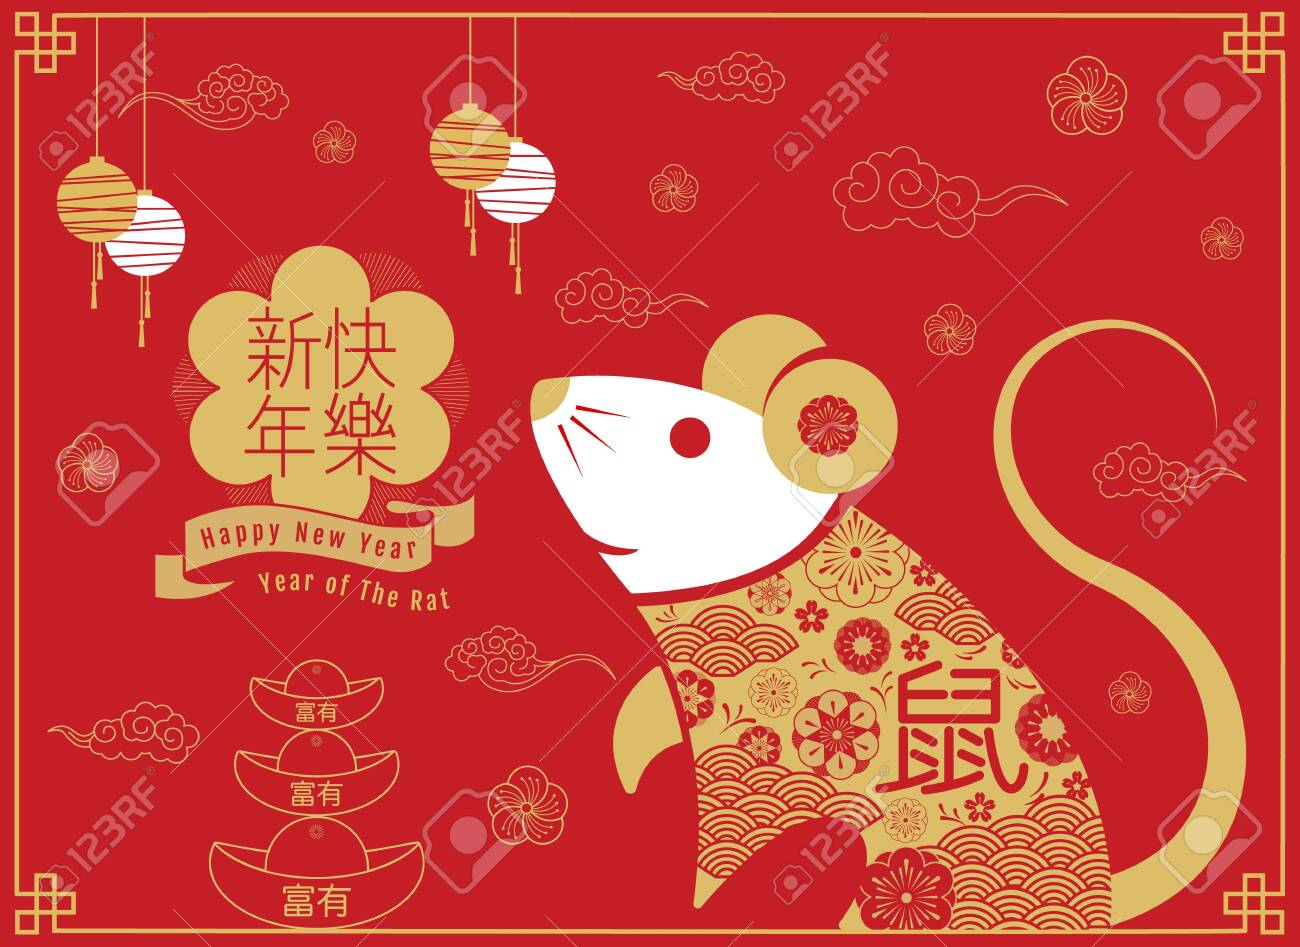 Chinese new year , 2020, Happy new year greetings, Year of the Rat ,Cartoon character. (Chinese translation: Happy new year, Gold, Rat) - 132638160